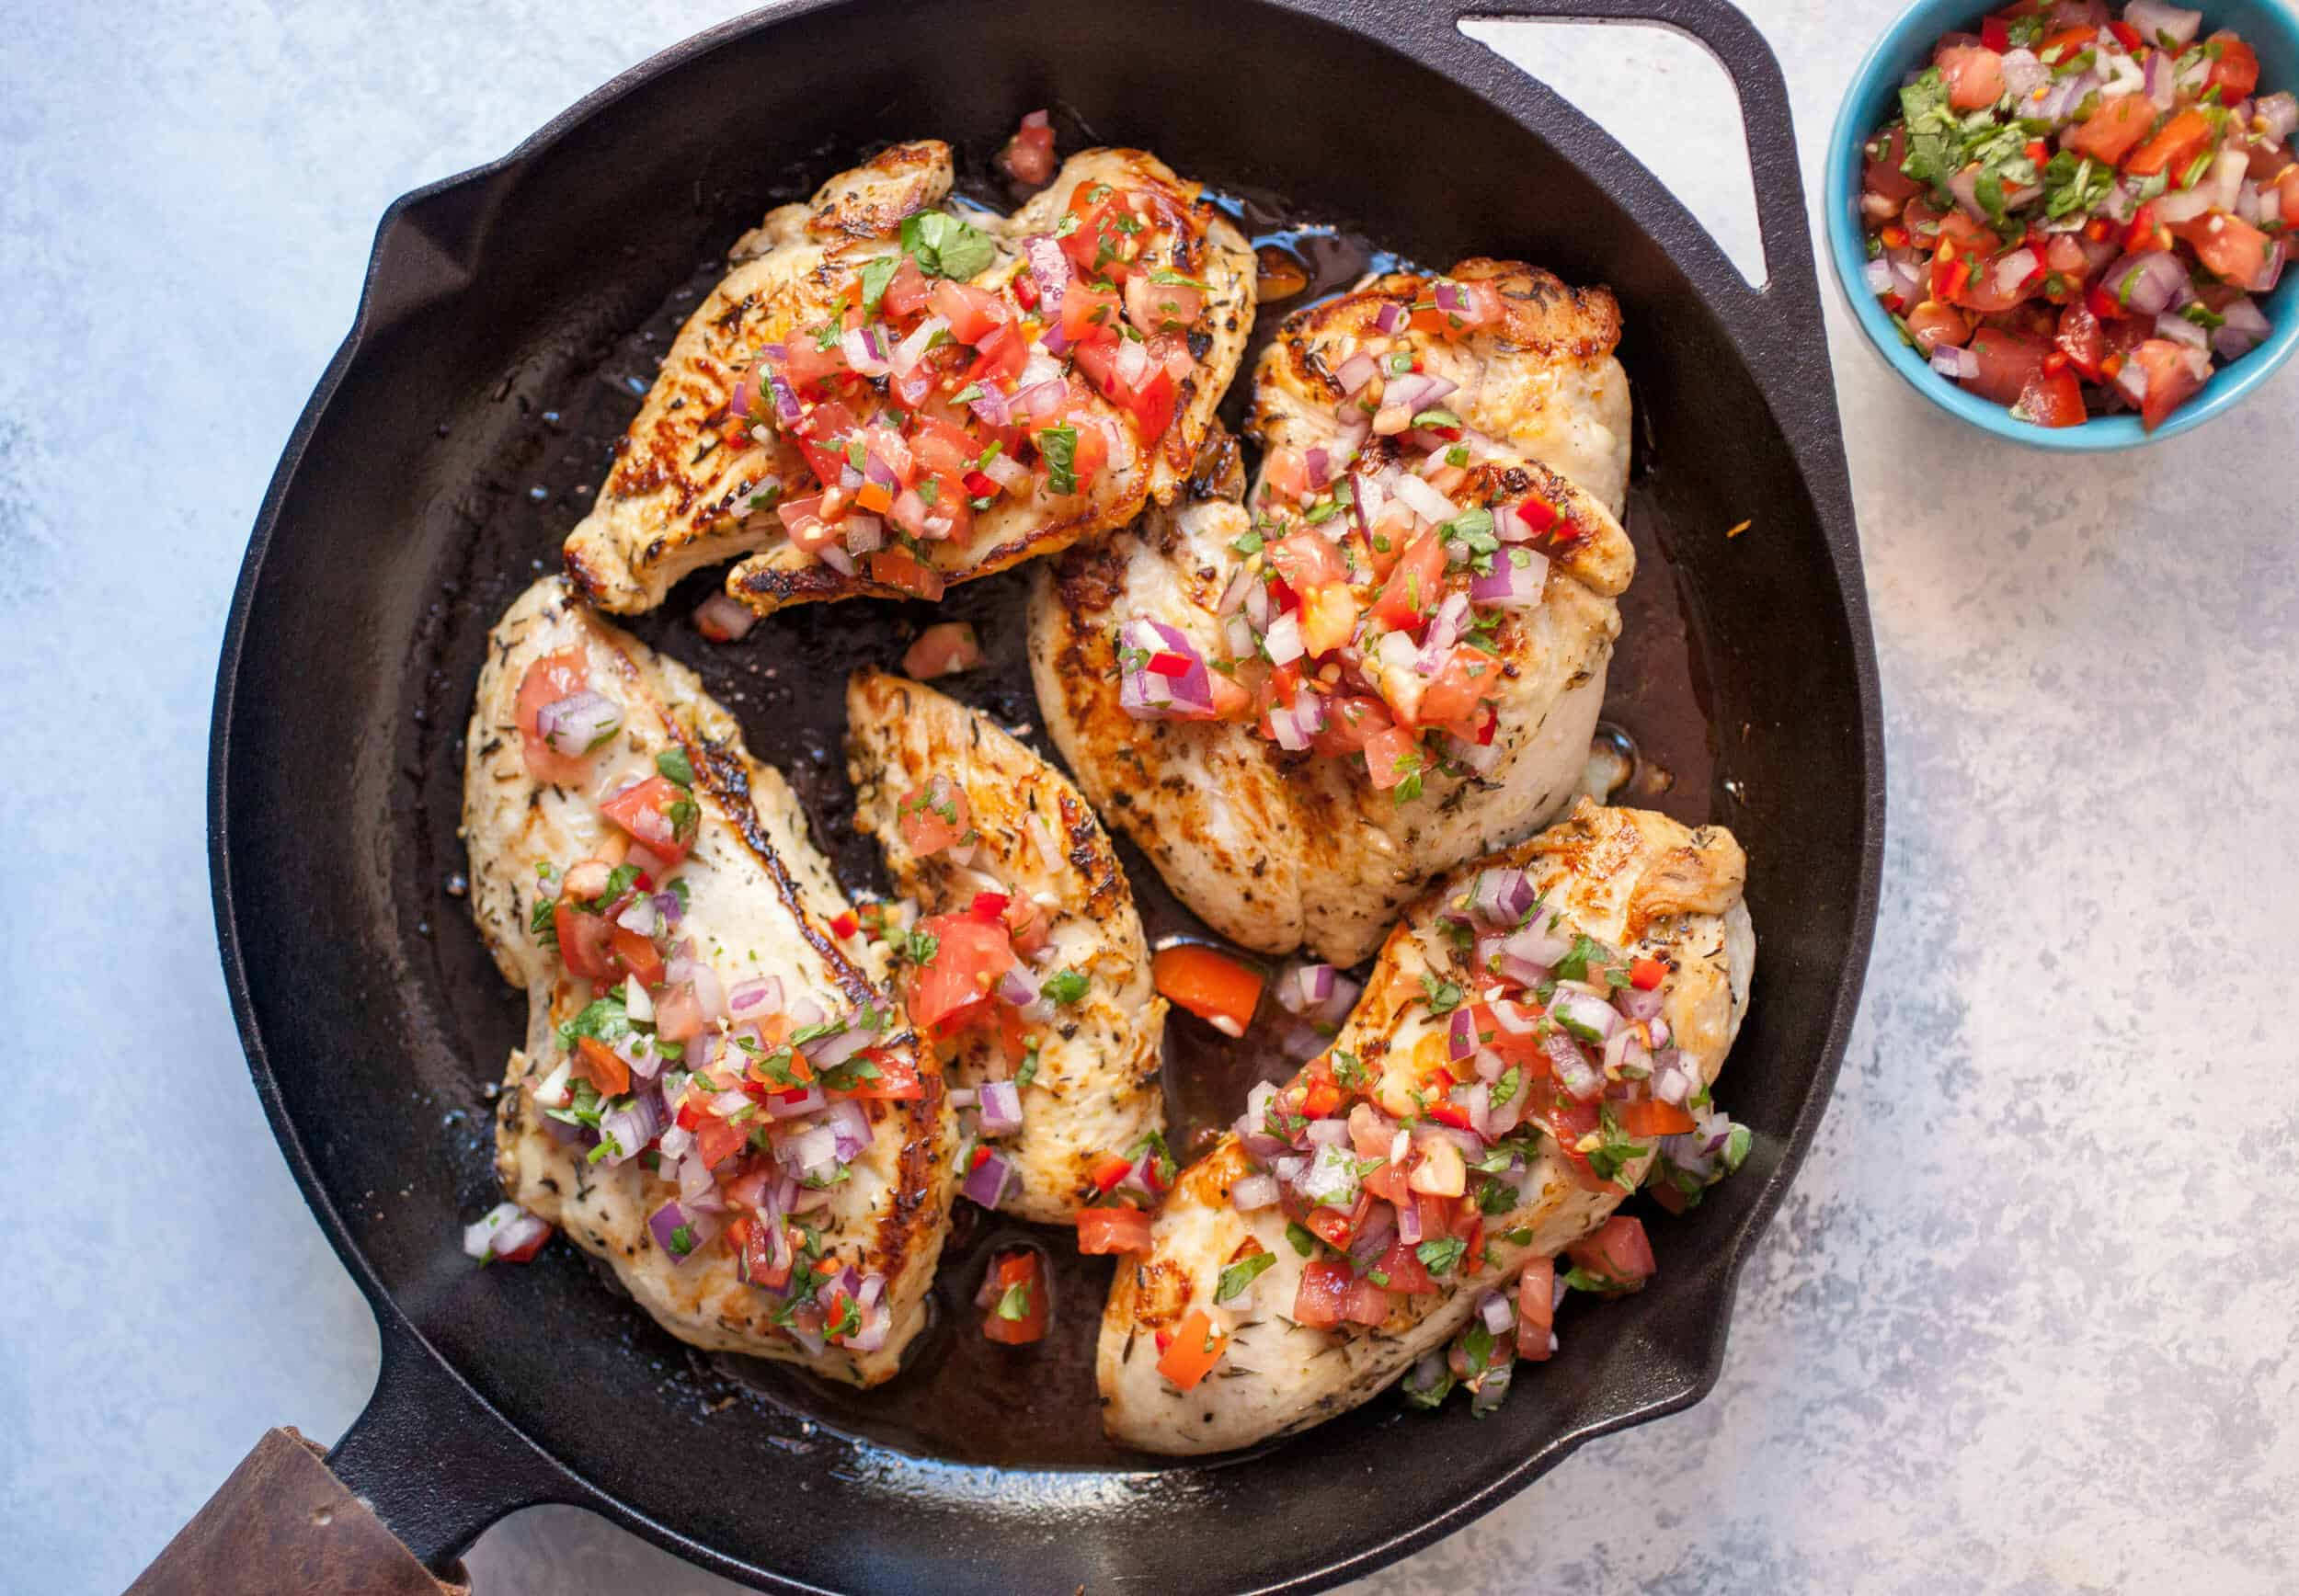 Lime Garlic Chicken: This is a light and simple chicken dish that goes great with almost any side. Enjoy! | macheesmo.com